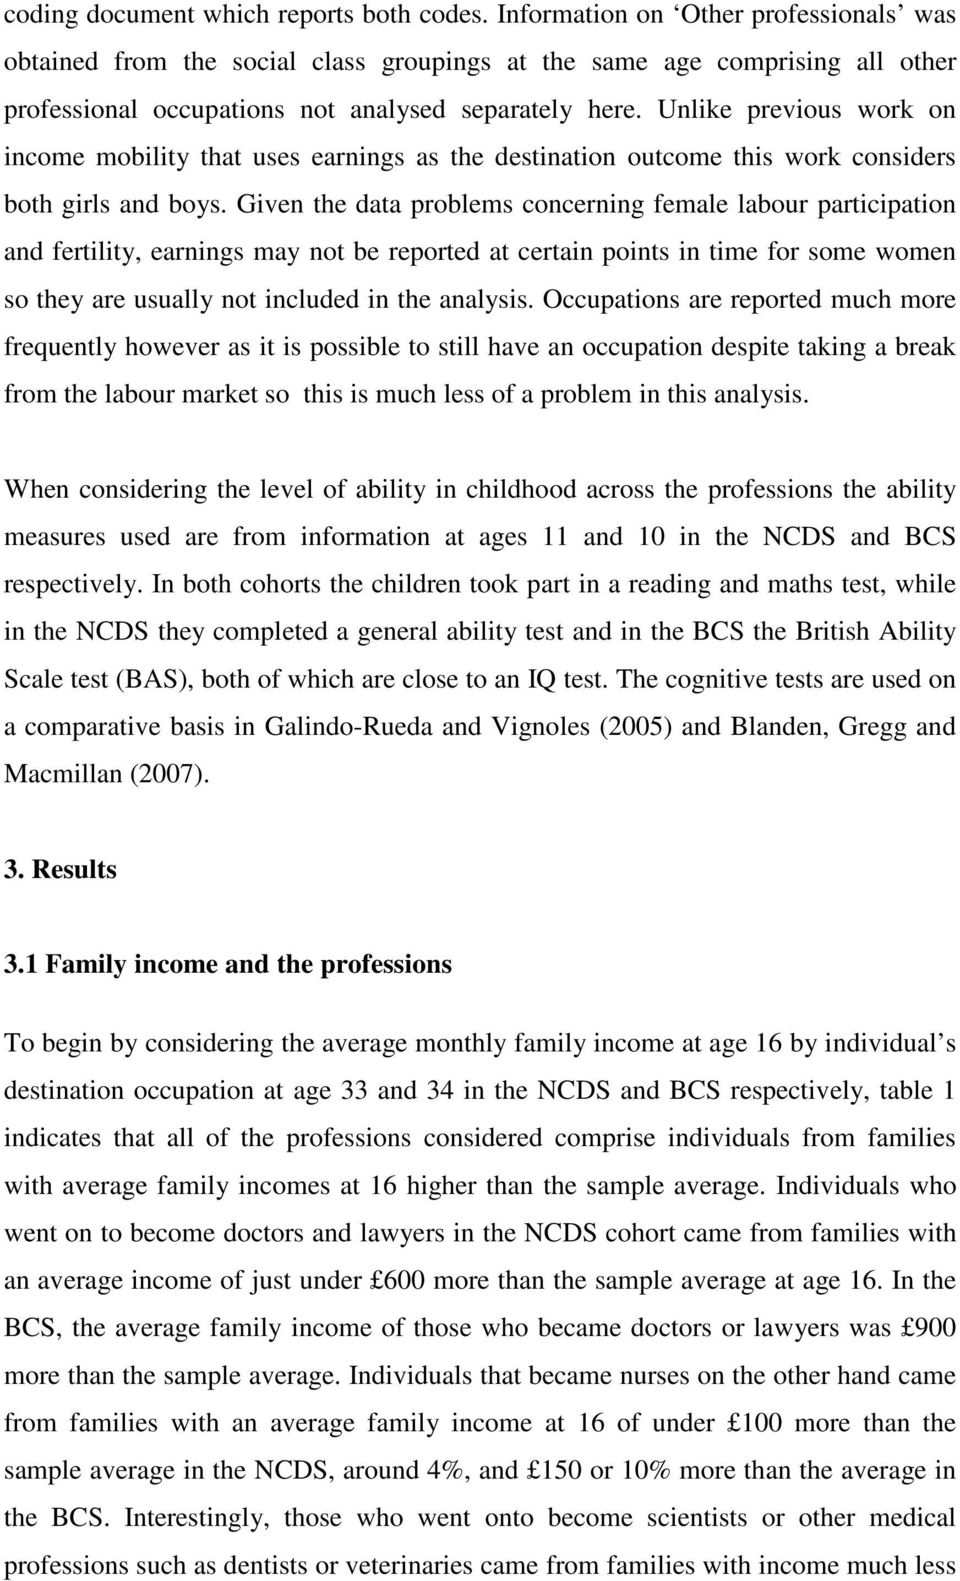 Unlike previous work on income mobility that uses earnings as the destination outcome this work considers both girls and boys.